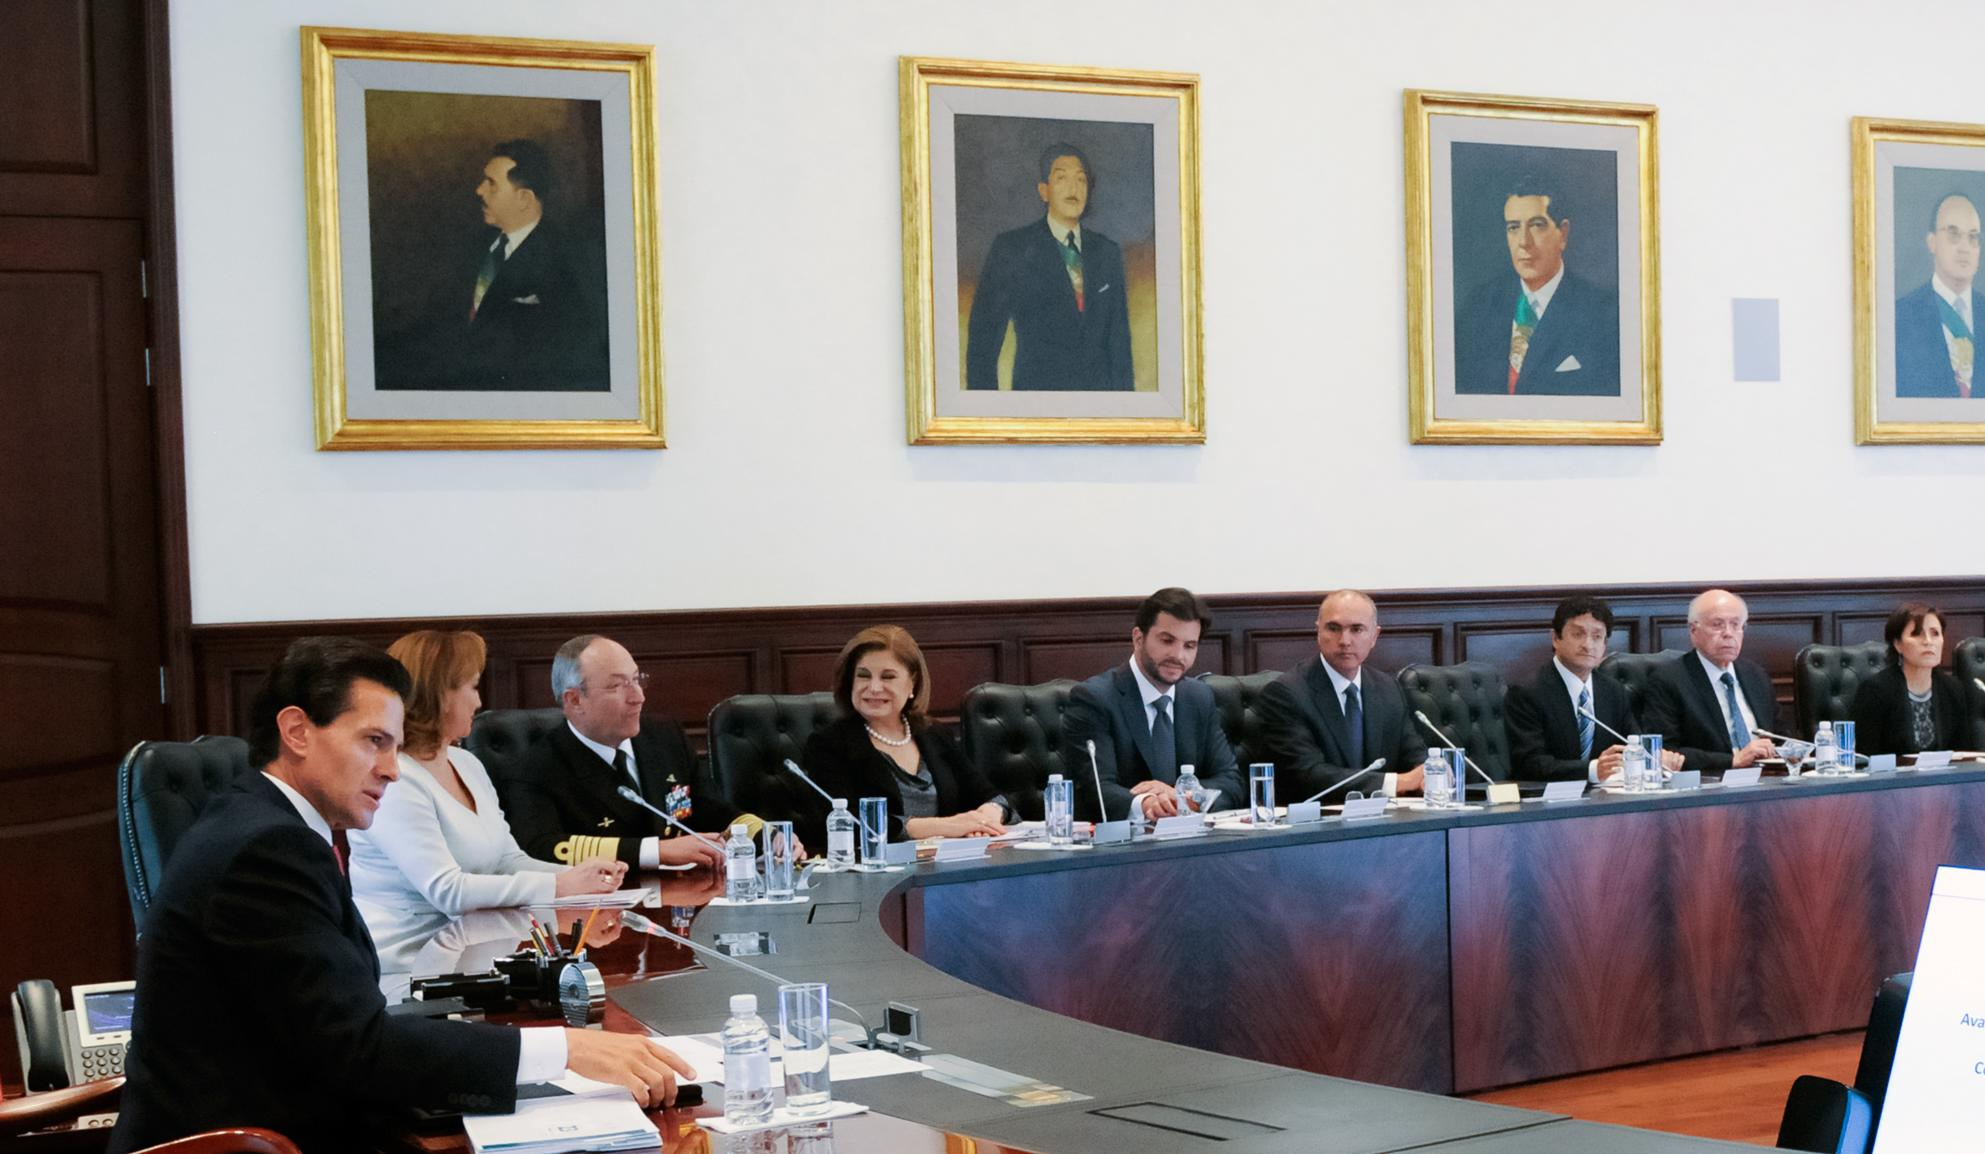 The president hailed the fact that in the June 5 elections, Mexicans expressed themselves in a civic, institutional and peaceful manner.